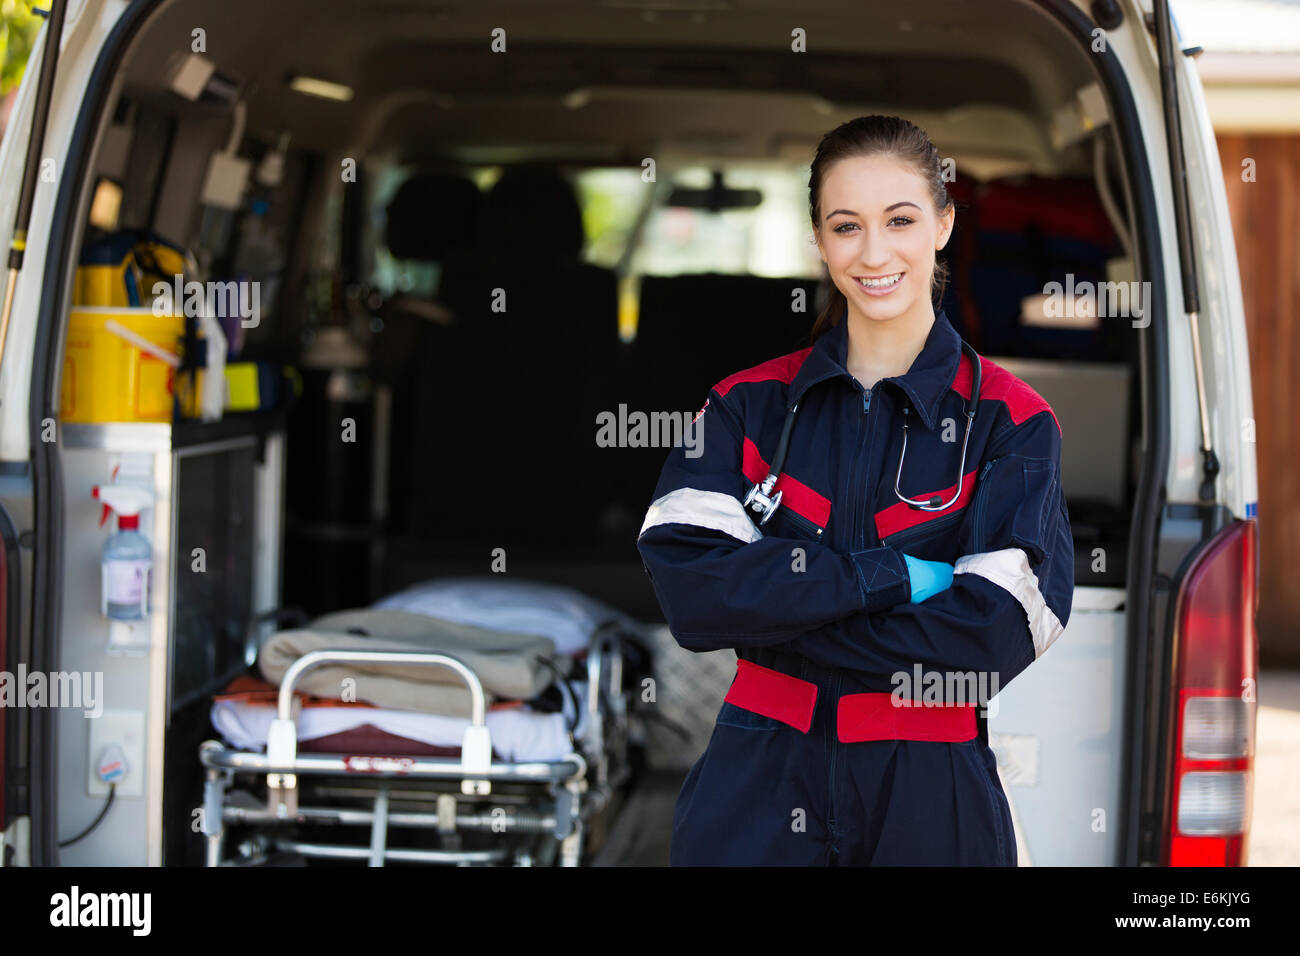 happy female paramedic standing in front of ambulance - Stock Image